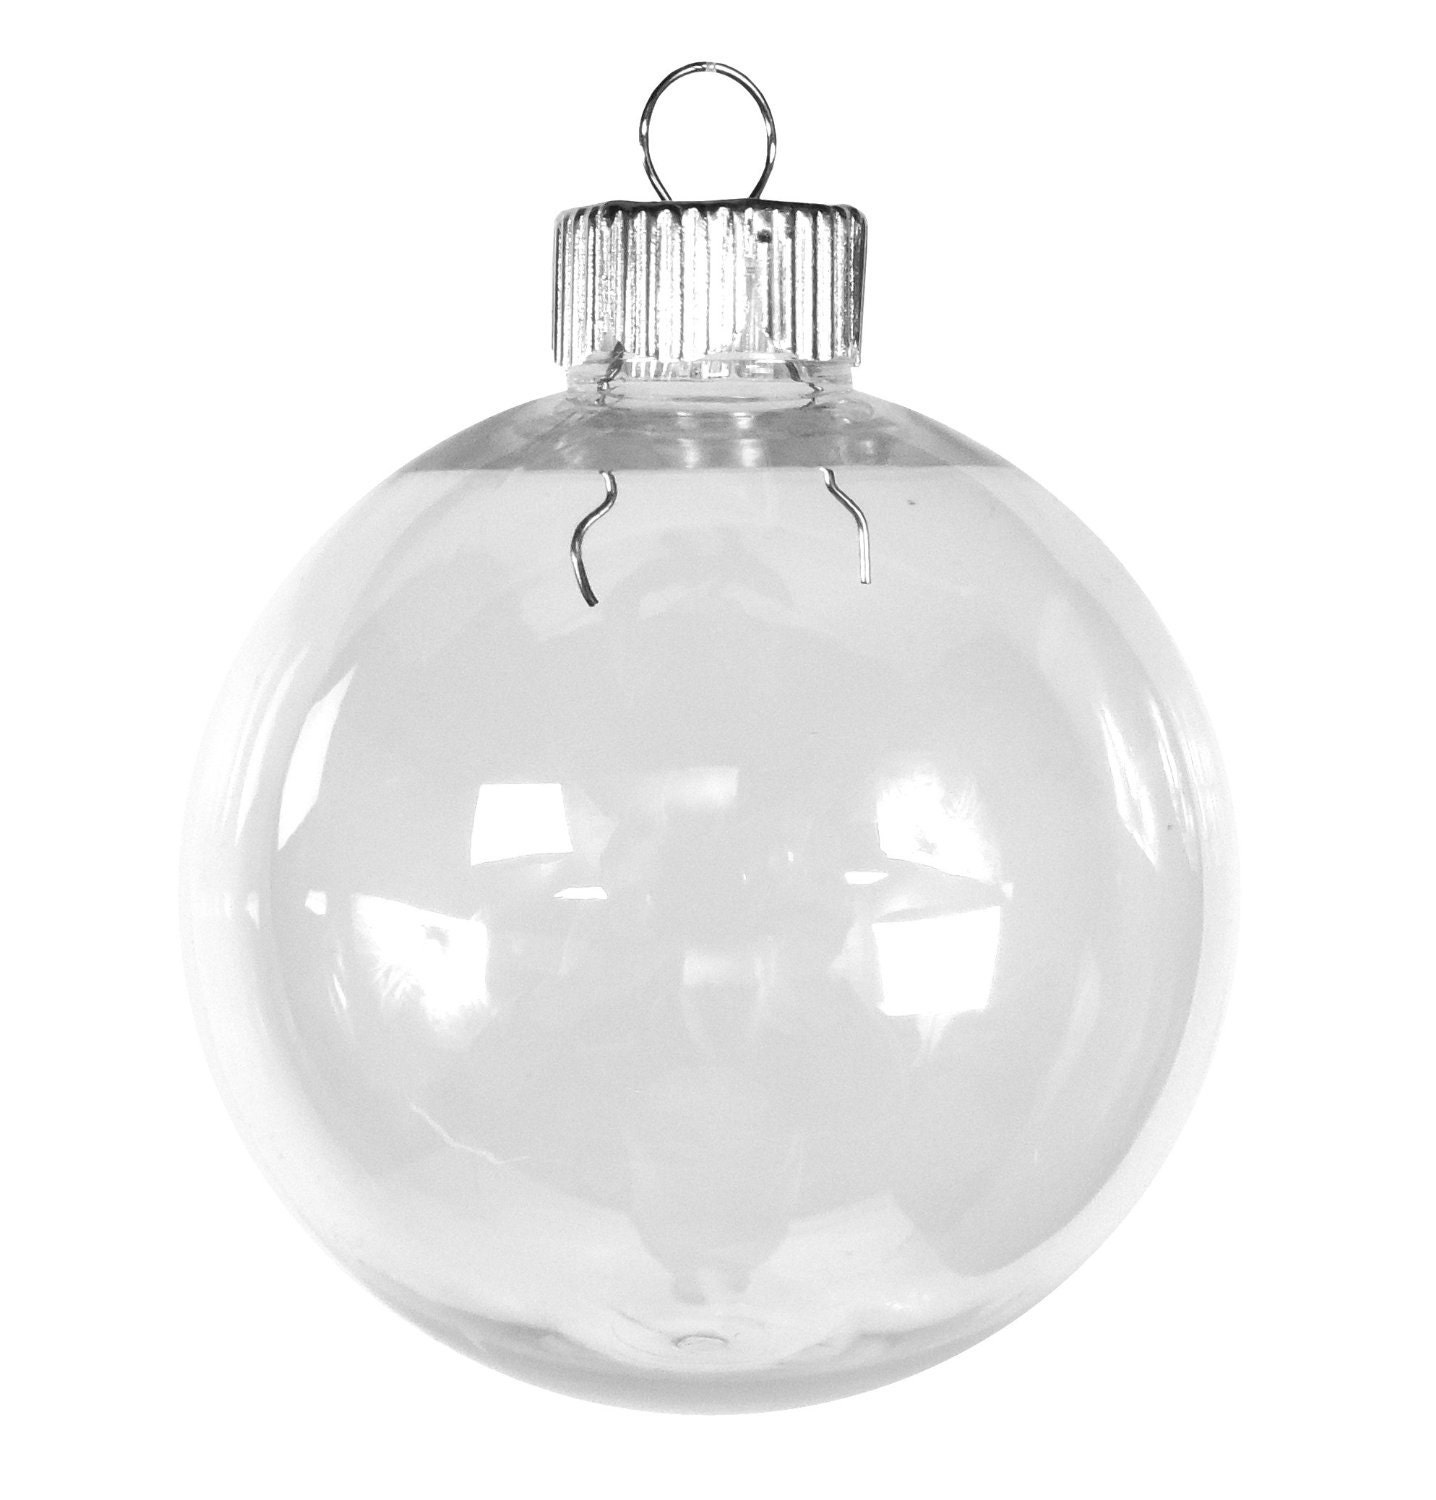 Bulk Case Clear Plastic Shatterproof Ornament 67mm Round x 50